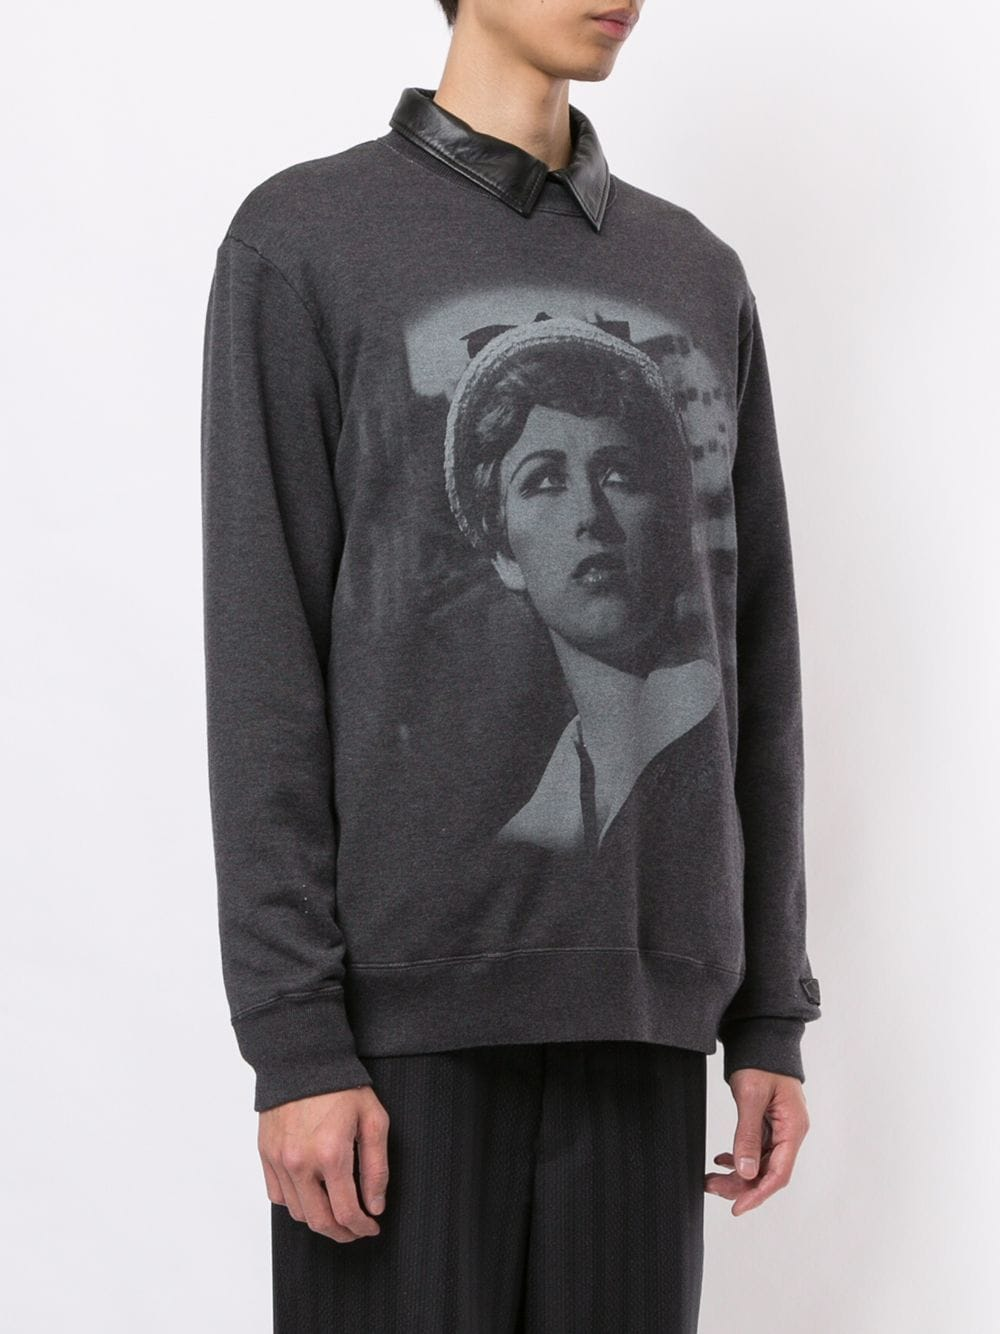 UNDERCOVER MEN CINDY SHERMAN PULLOVER